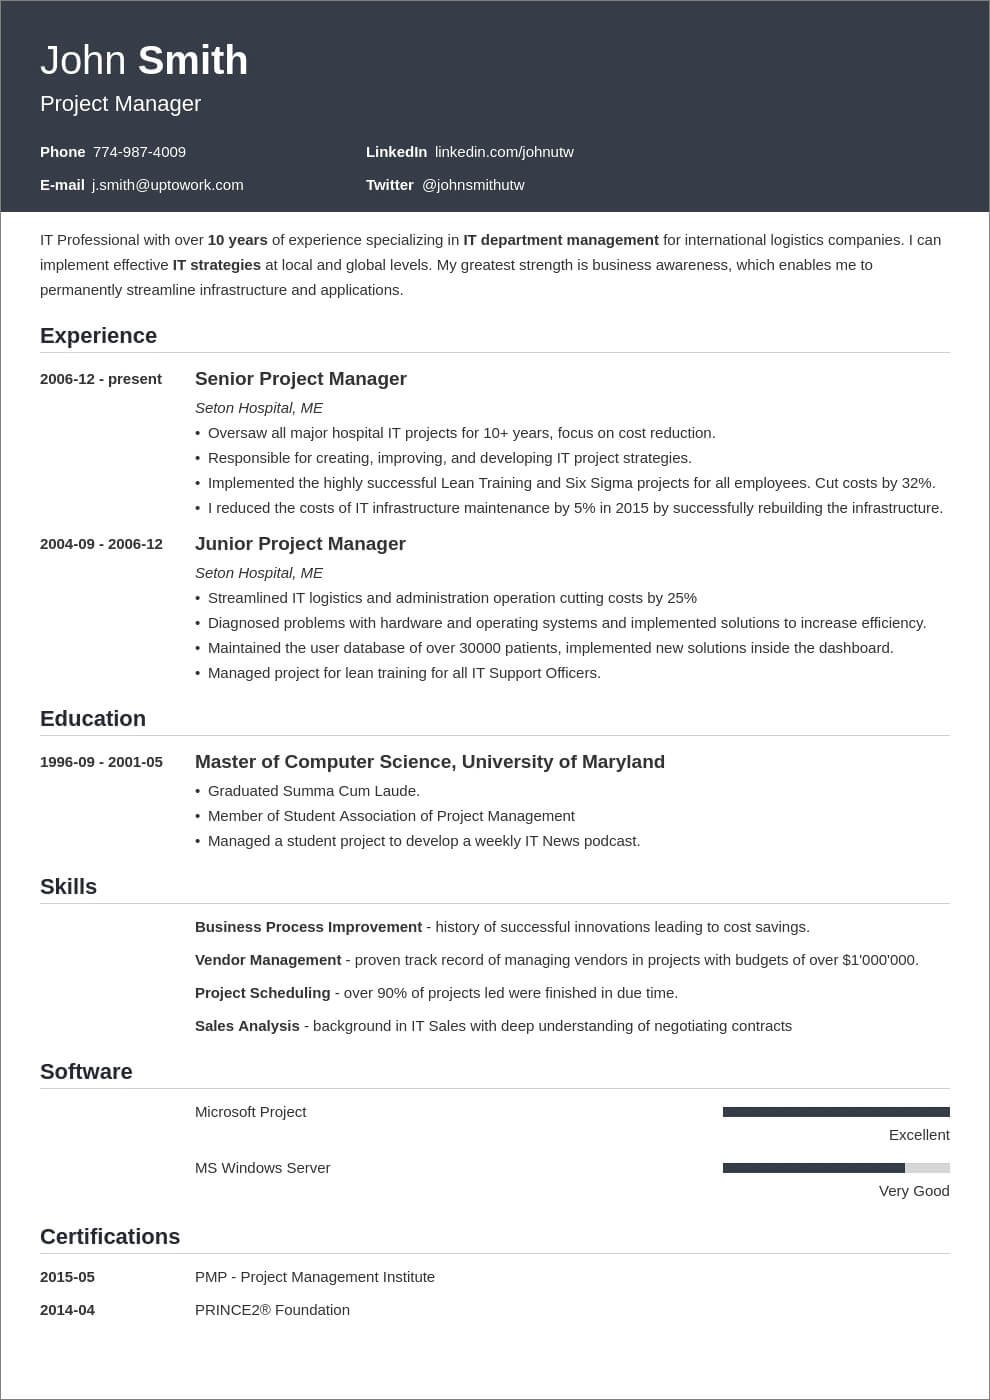 Chronological resume, functional resume, and combination resume. 11 Ats Friendly Resume Templates That Beat The Bots In 2021